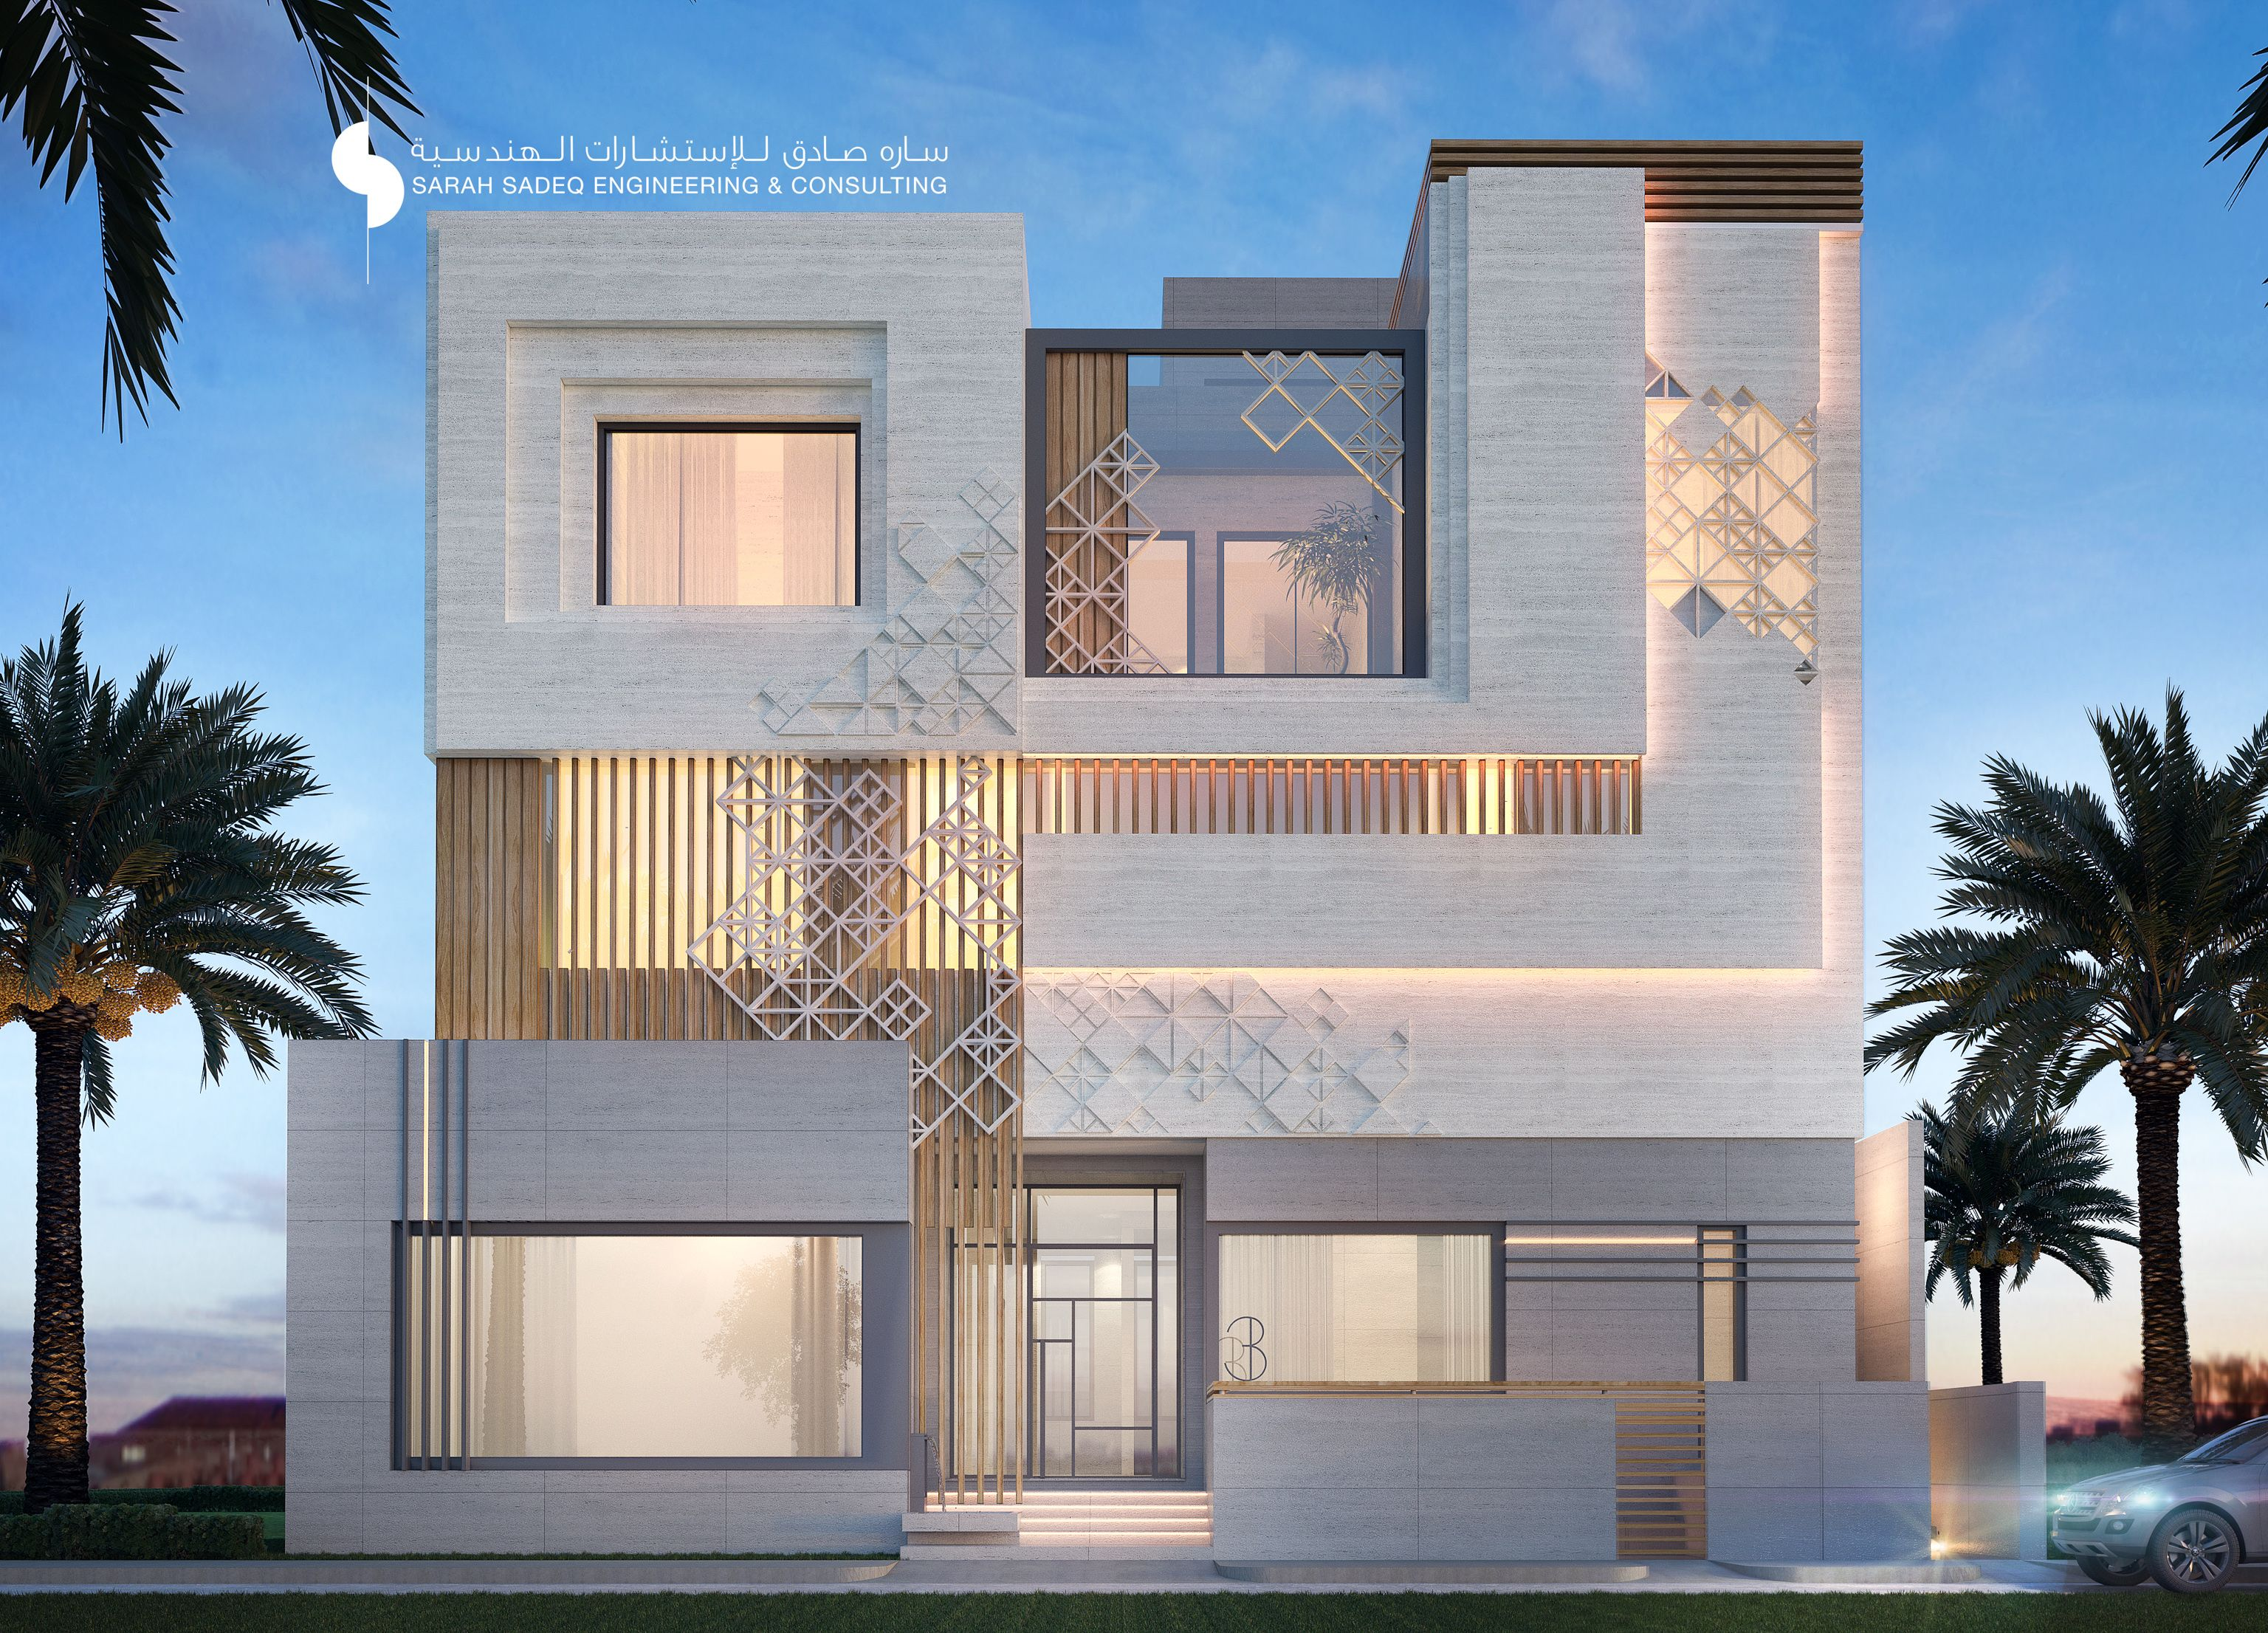 Private villa kuwait 400 m by sarah sadeq architects for Images of front view of beautiful modern houses